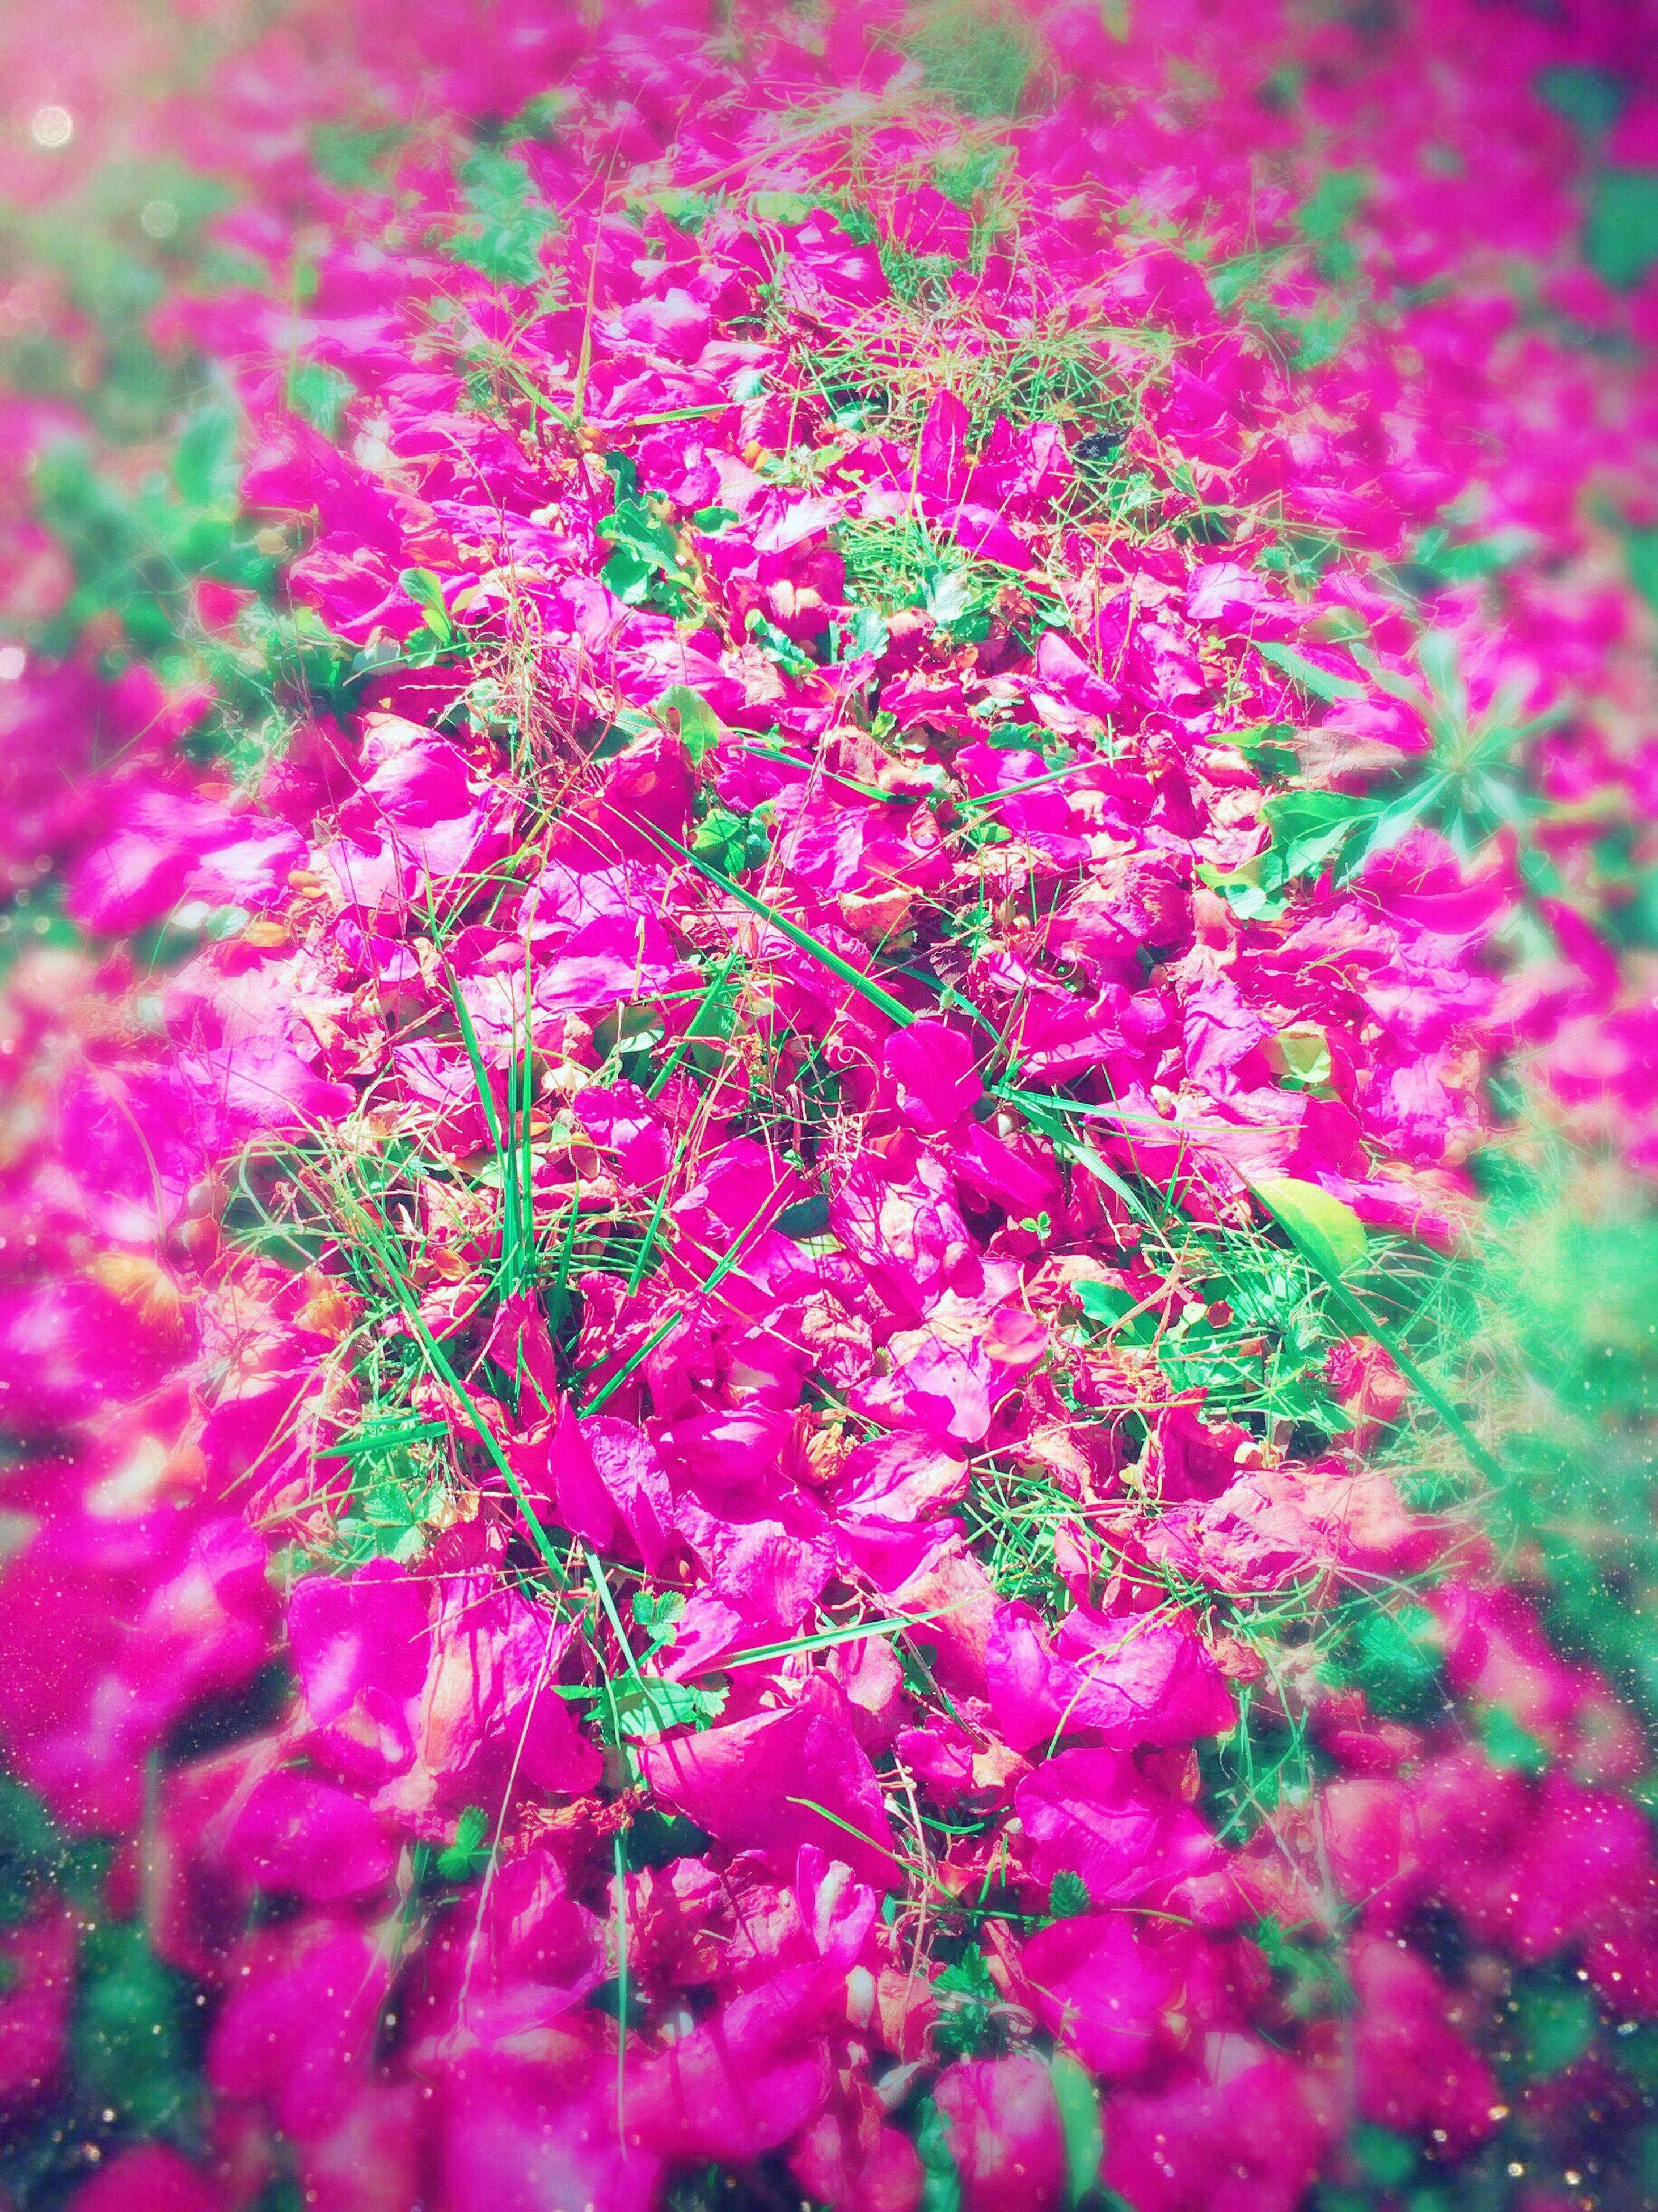 pink color, nature, growth, close-up, microscope, biology, no people, complexity, backgrounds, animal themes, beauty in nature, freshness, microbiology, day, undersea